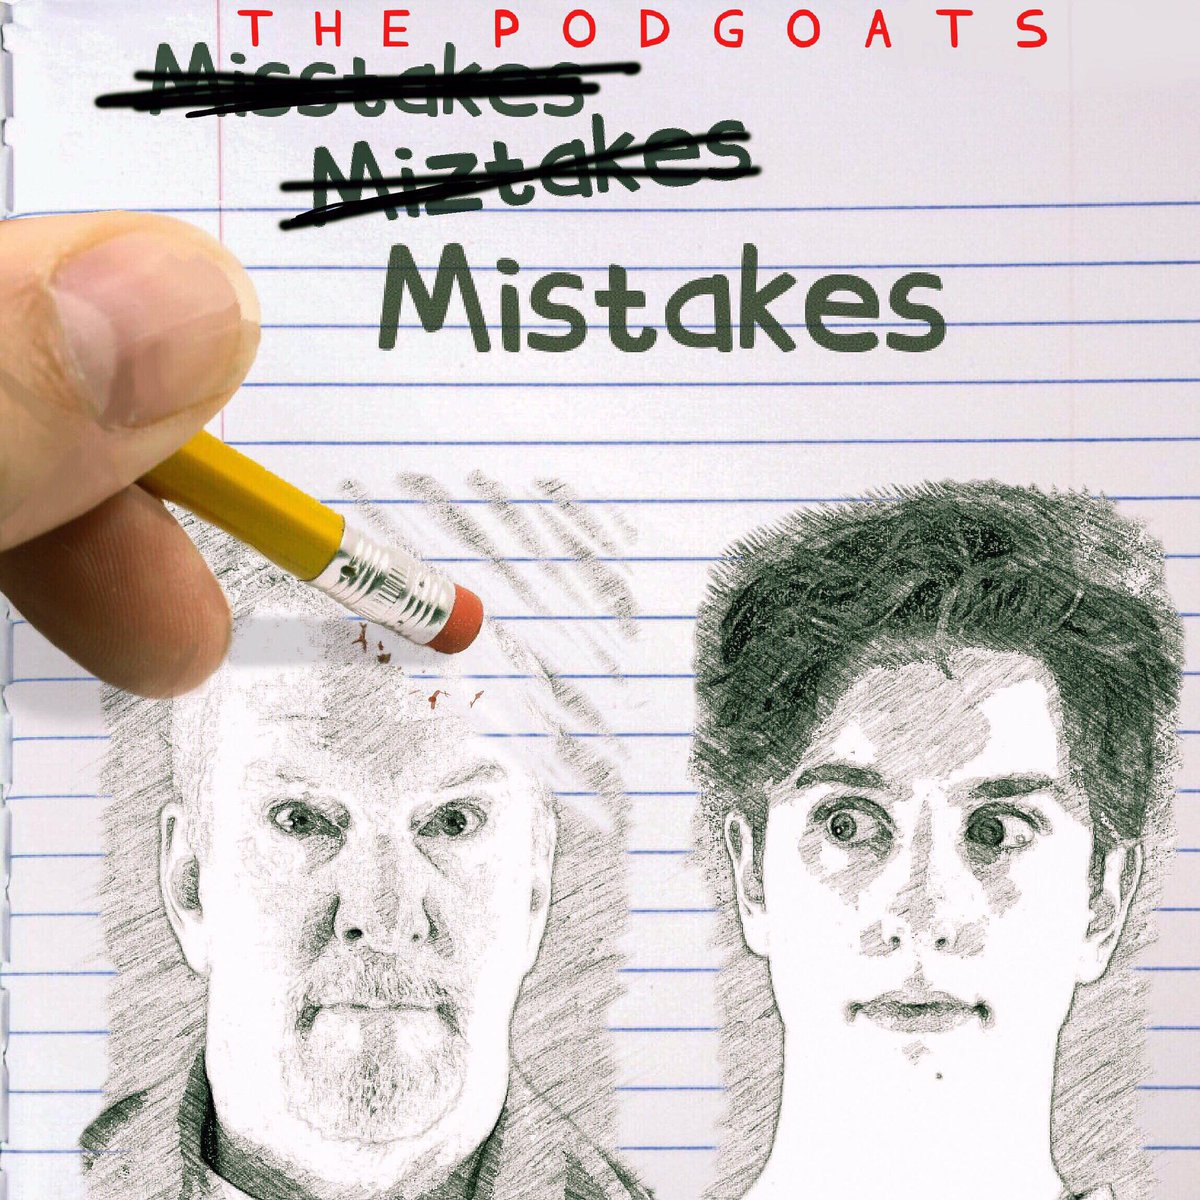 We'ev got a knew episode adn its all about misstakes! Check it out at 997wtn.com/podgoats